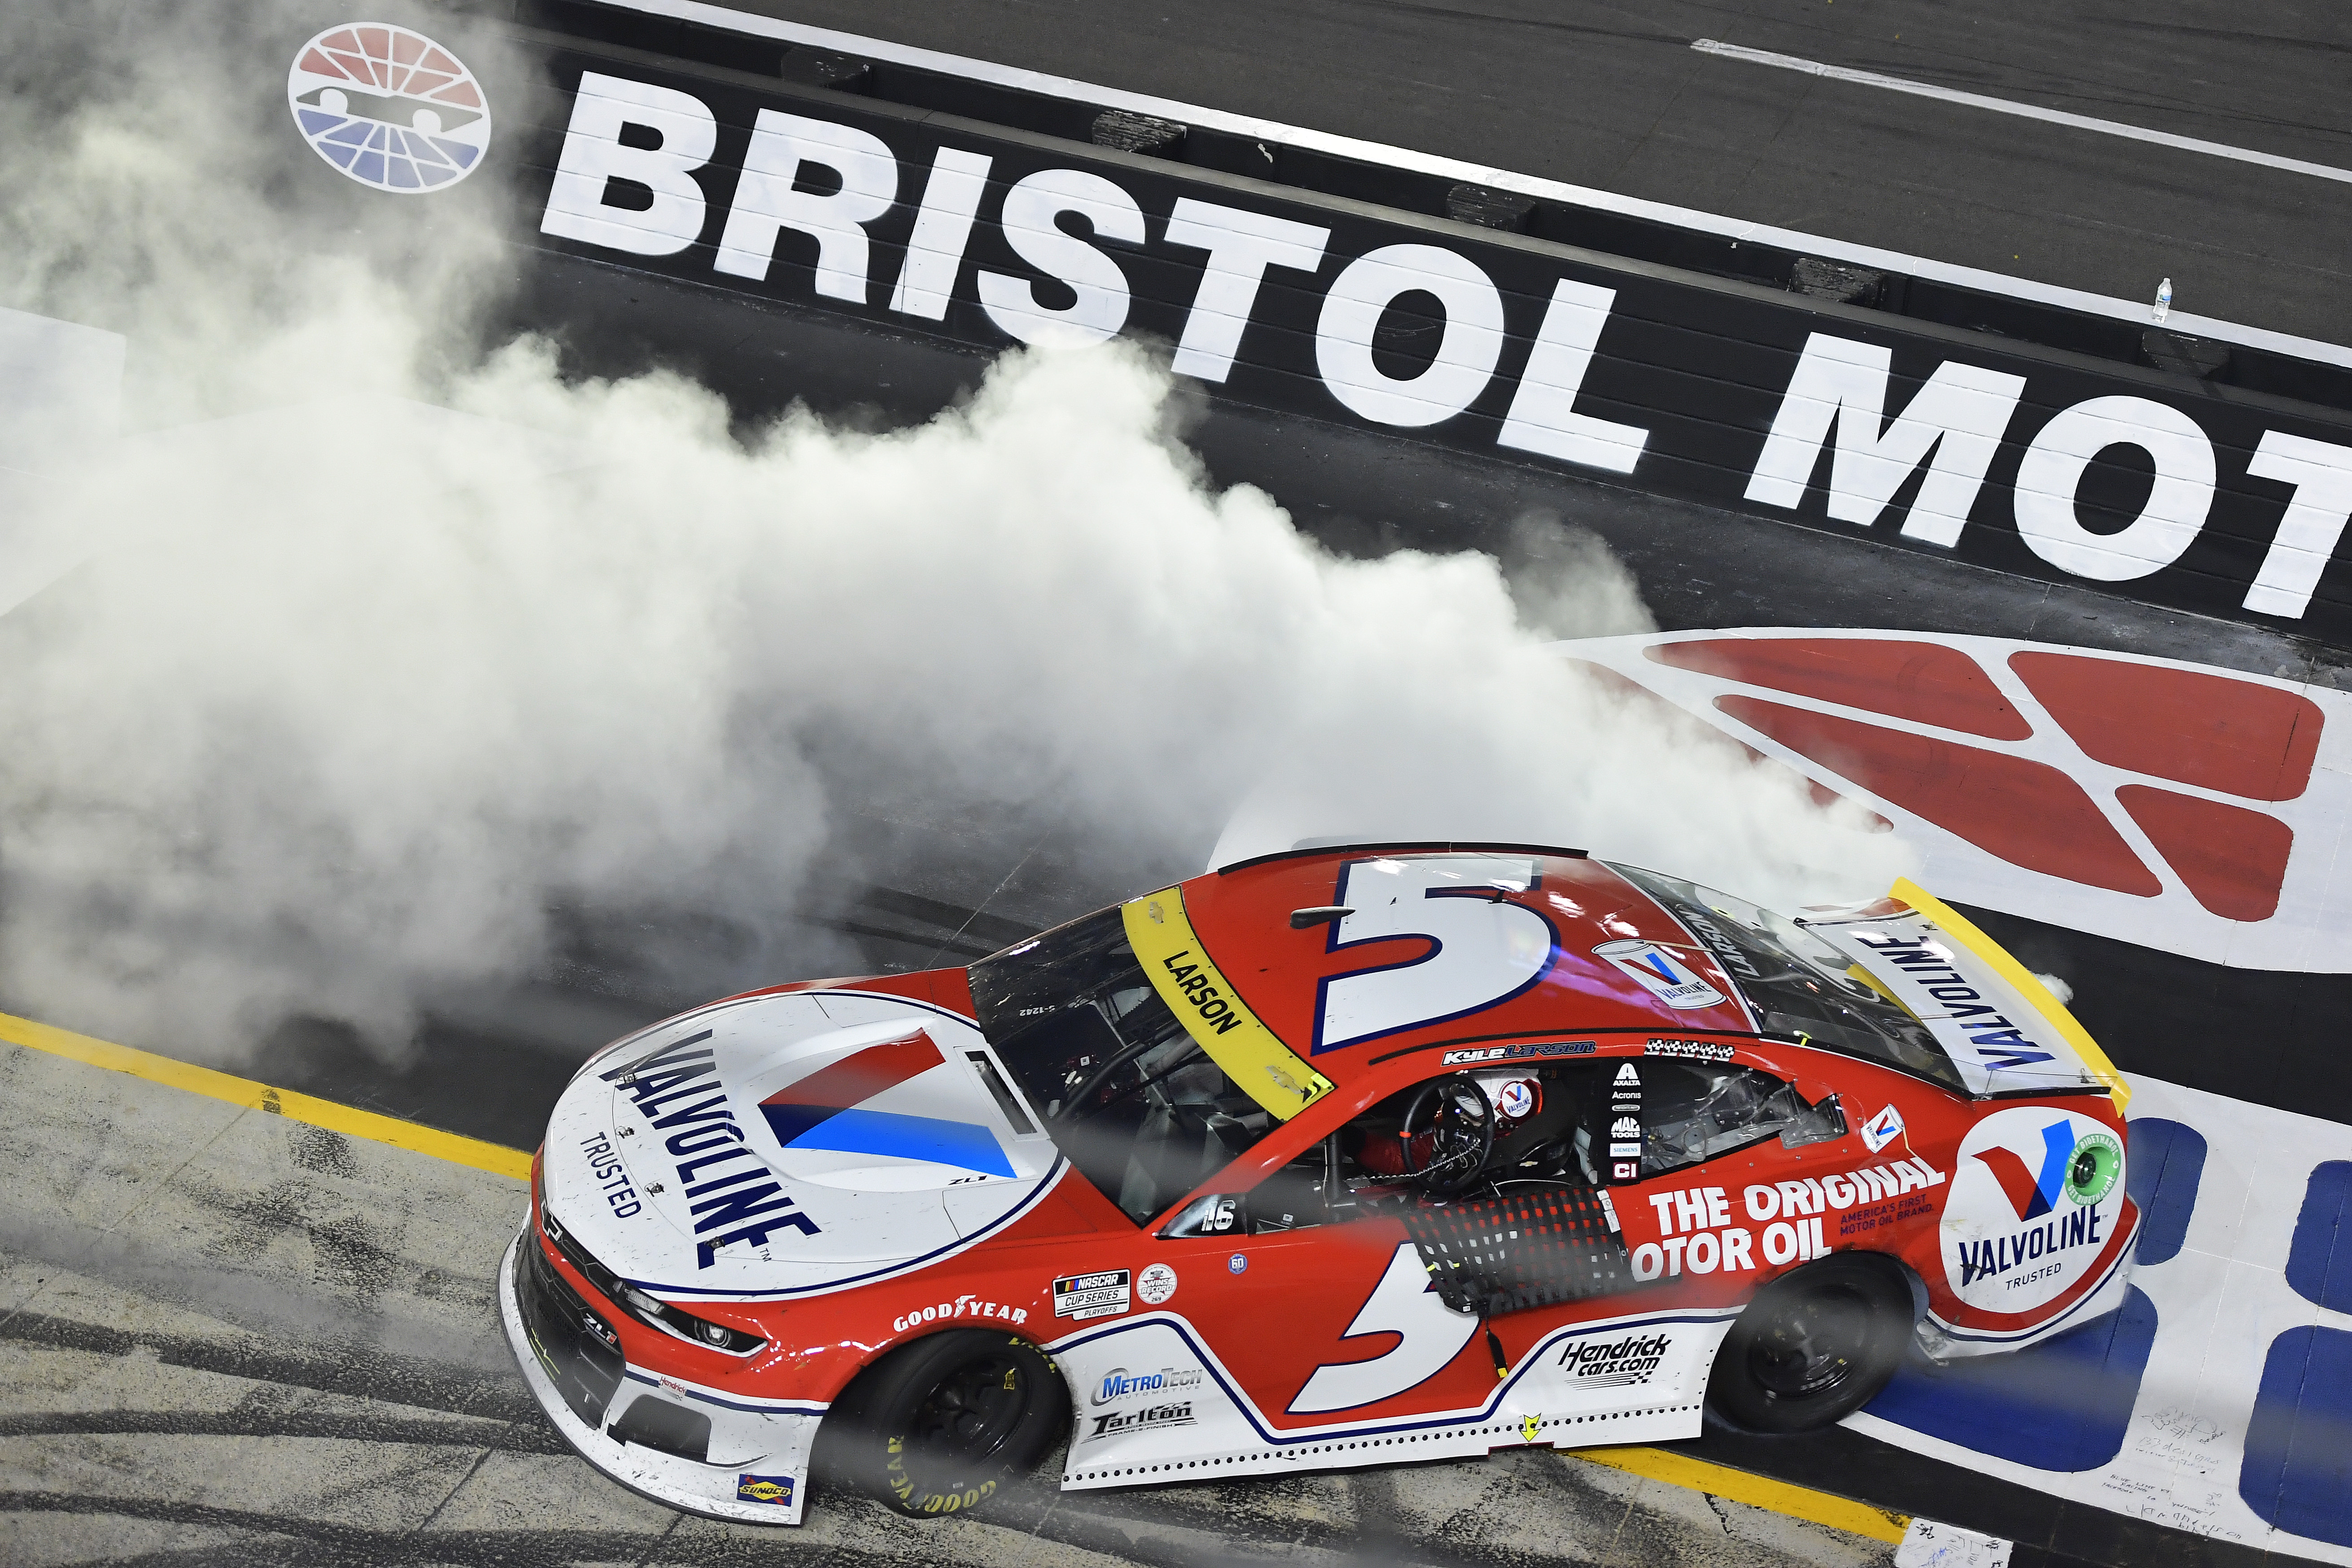 Kyle Larson, driver of the #5 Valvoline Chevrolet, celebrates with a burnout after winning the NASCAR Cup Series Bass Pro Shops Night Race at Bristol Motor Speedway on September 18, 2021 in Bristol, Tennessee.